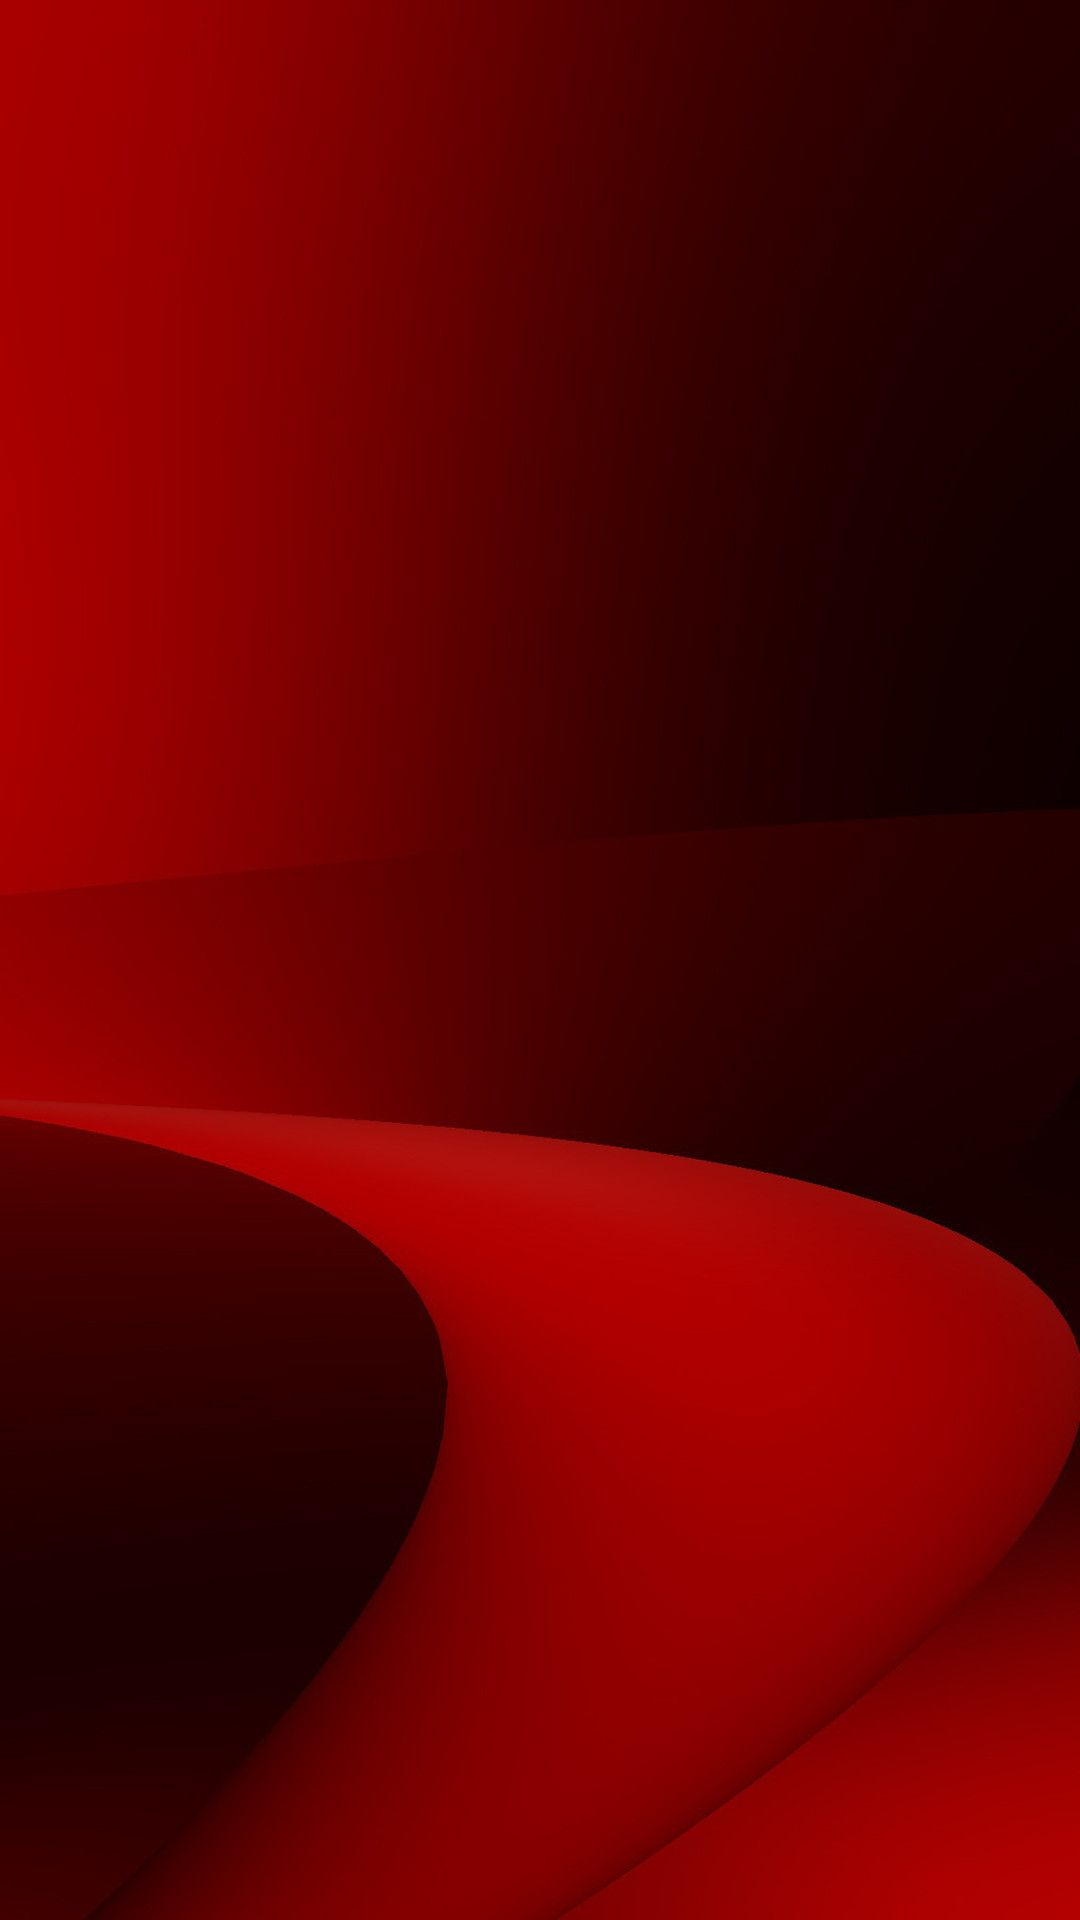 Red Gaming Background Picture Red And Black Wallpaper Iphone Wallpaper Logo Background Pictures